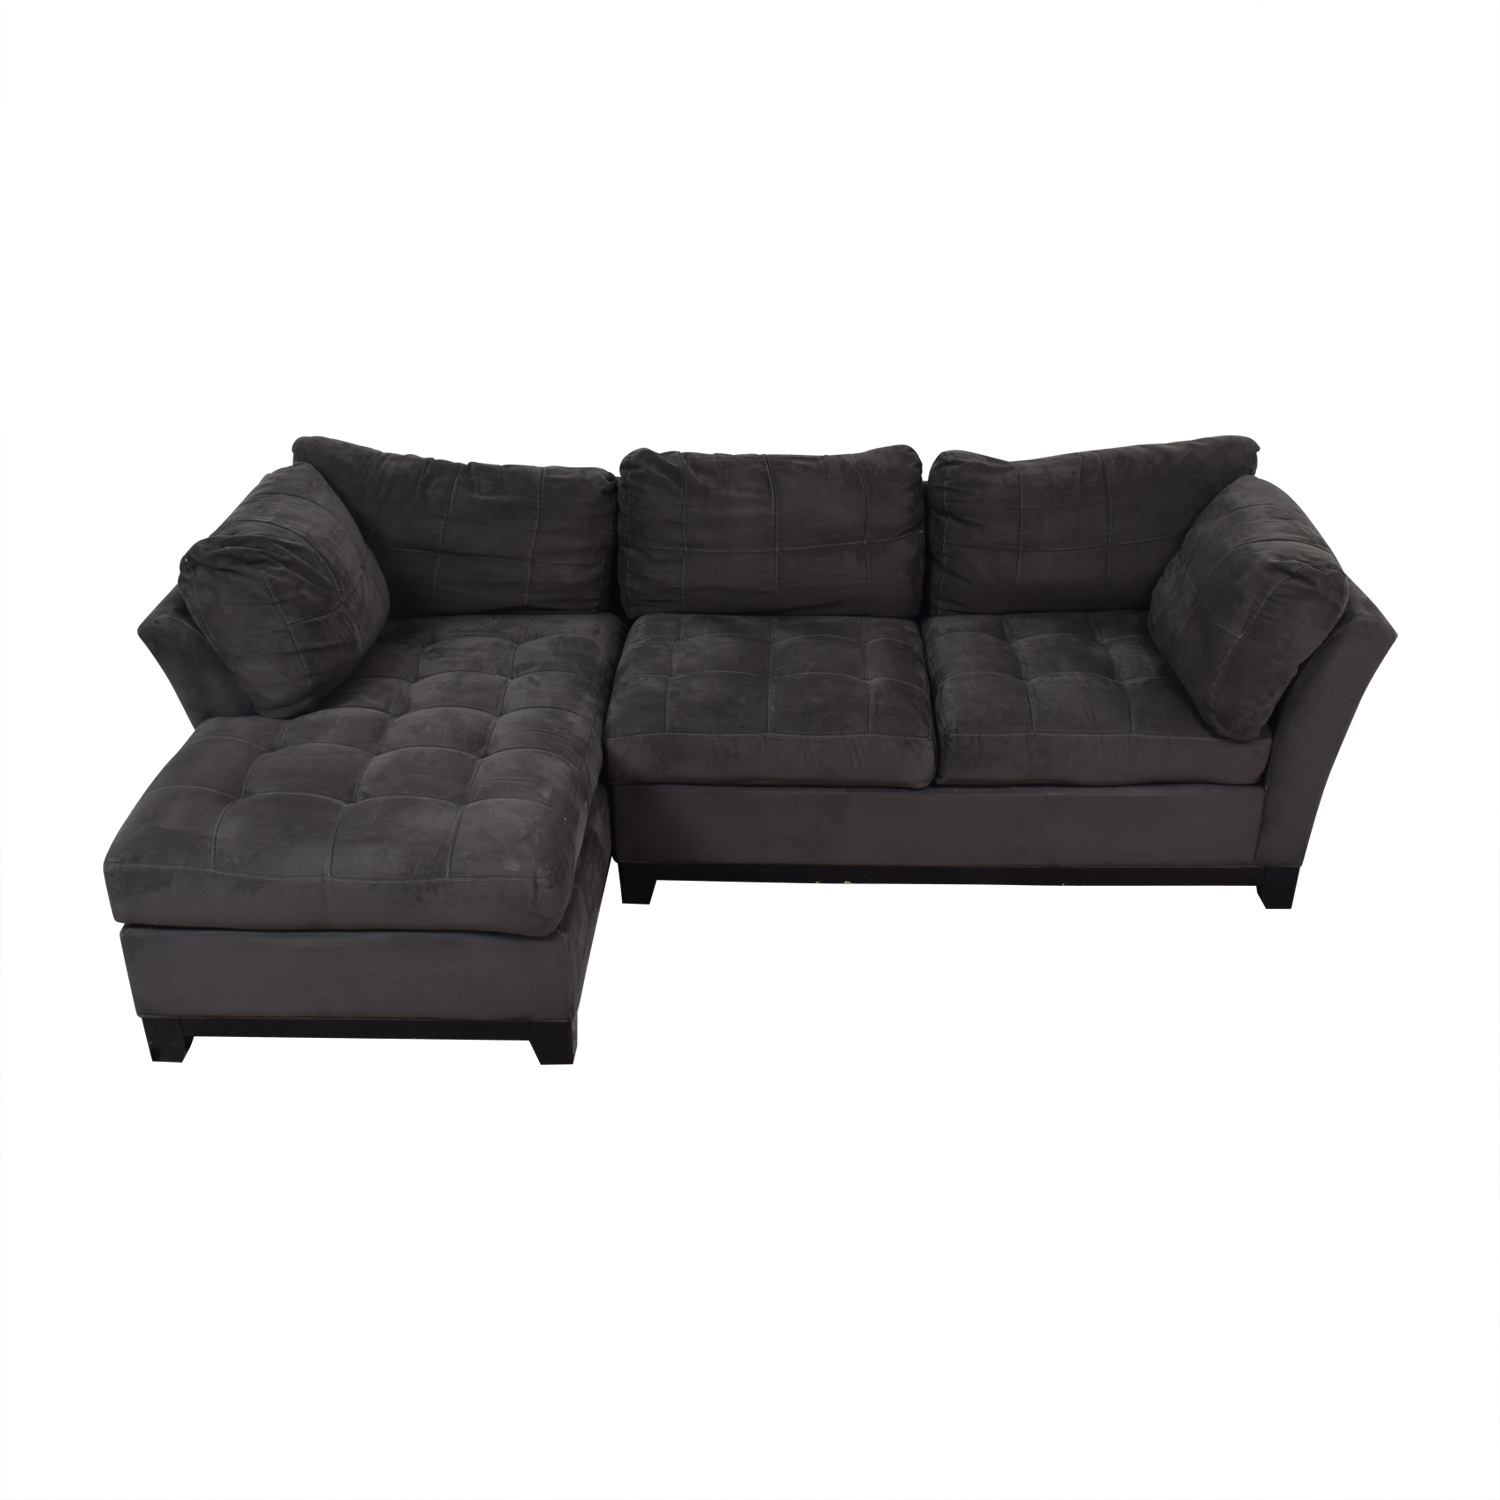 Raymour & Flanigan Raymour & Flanigan Cindy Crawford Grey Semi Tufted Chaise Sectional GRAY